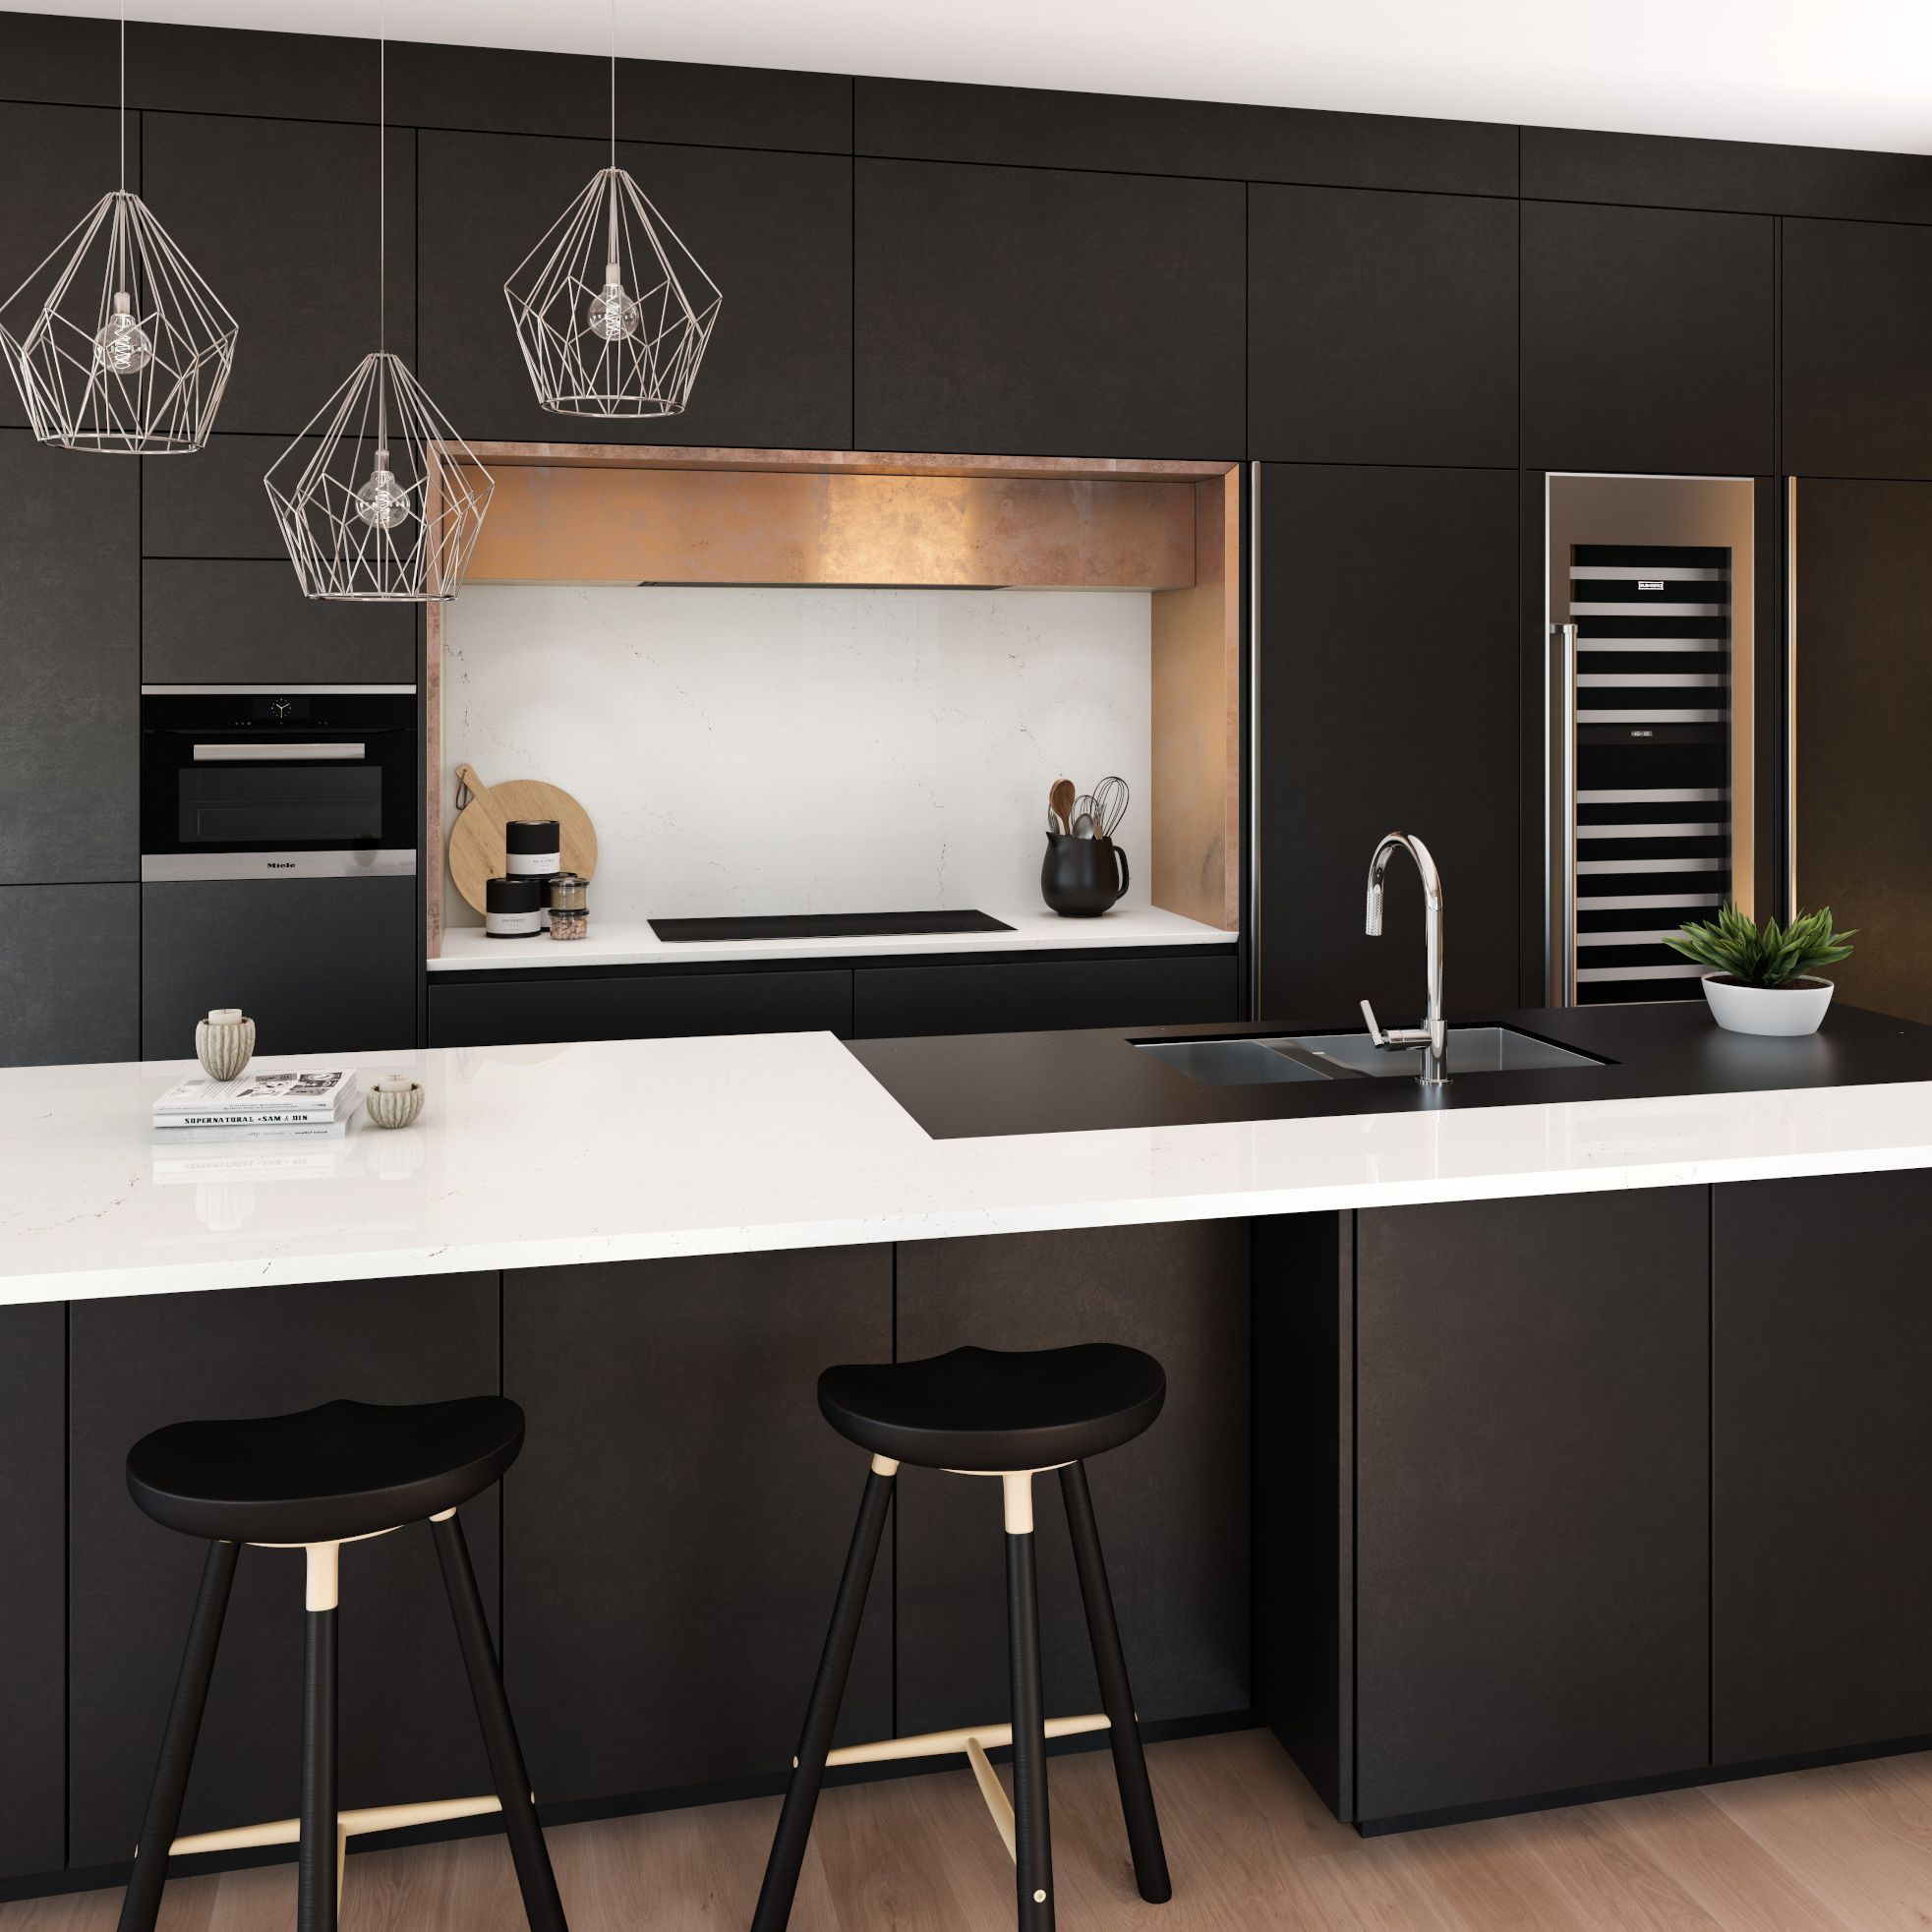 A picture containing indoor, wall, kitchen appliance  Description automatically generated